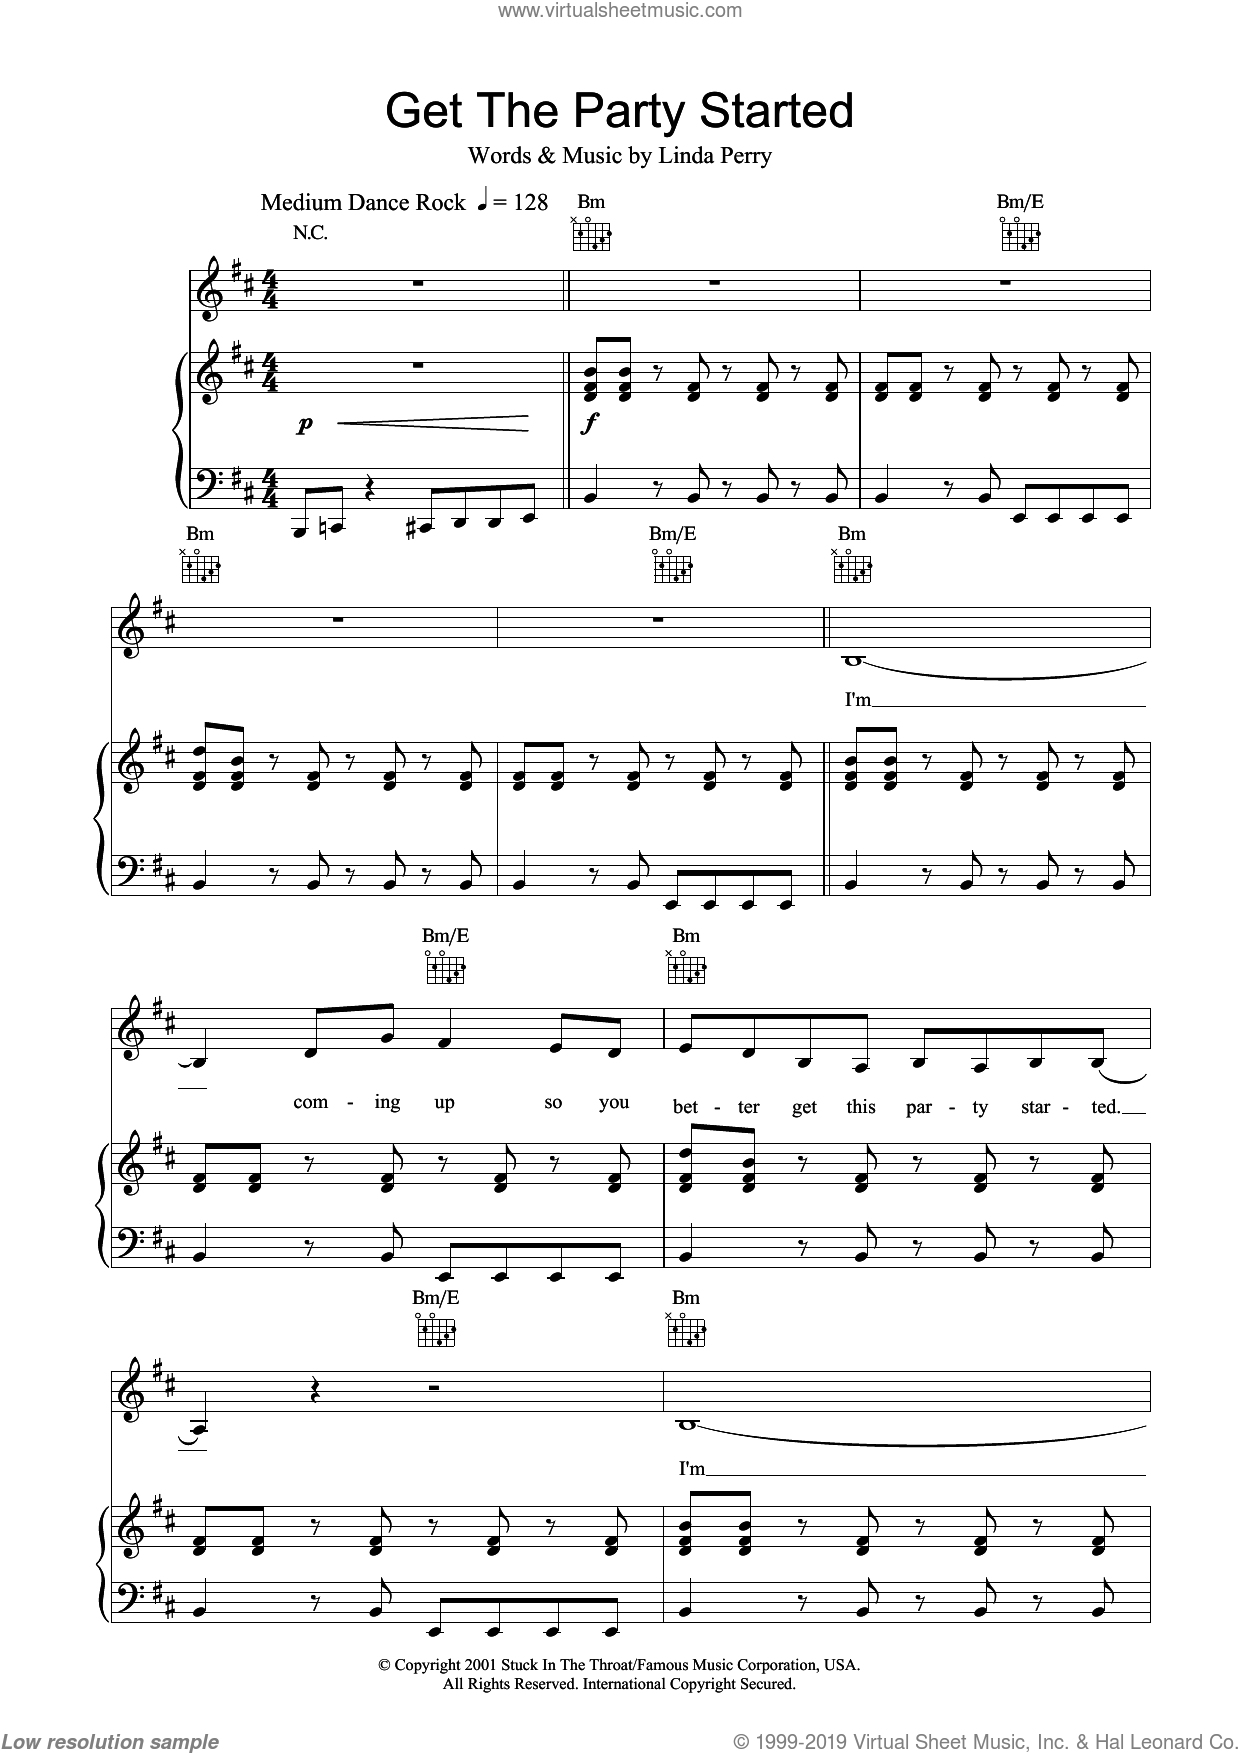 Get The Party Started sheet music for voice, piano or guitar